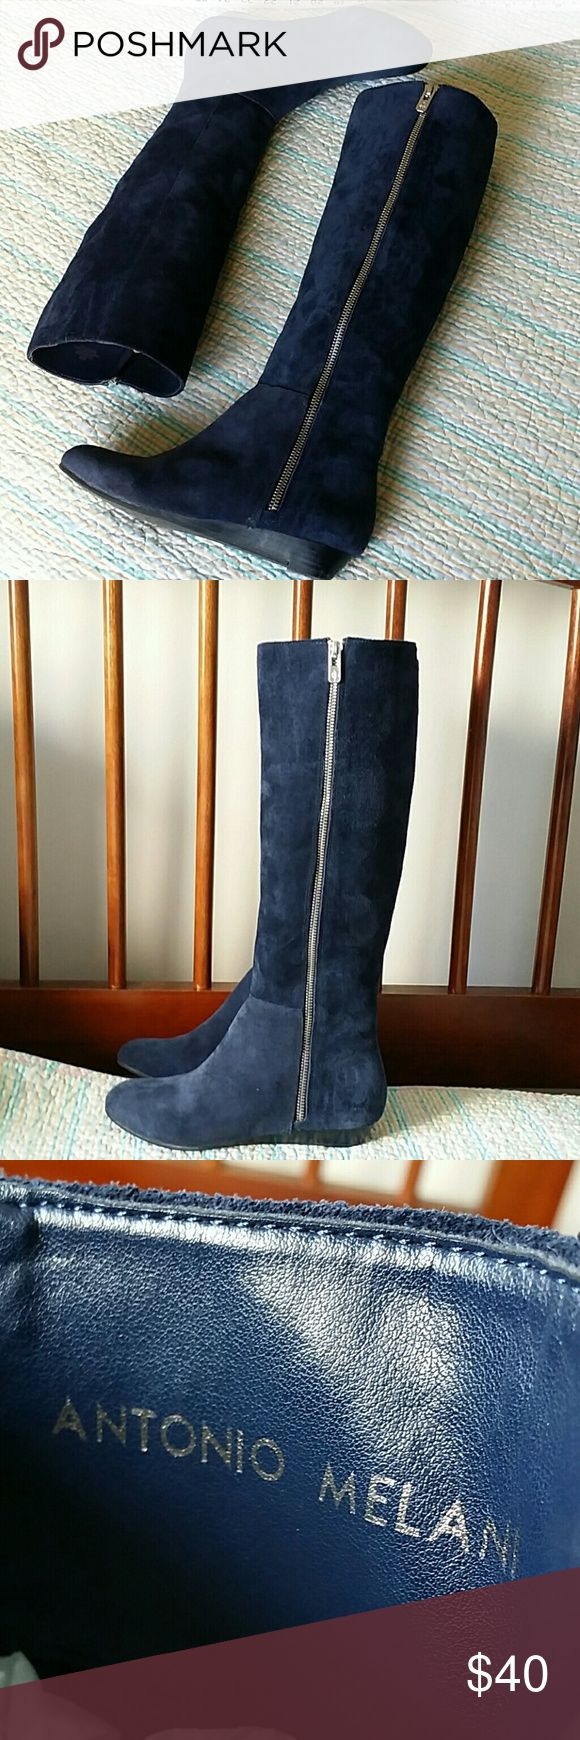 """Antonio Melani Blue Suede Leather Knee High Sz 6M Antonio Melani Blue Suede Leather Knee High Stretch Boots 1"""" Mini Wedge Size 6 - Boots measure 17"""" from heel to the top. These show a little wear from previous use but still in great shape! :) ANTONIO MELANI Shoes"""